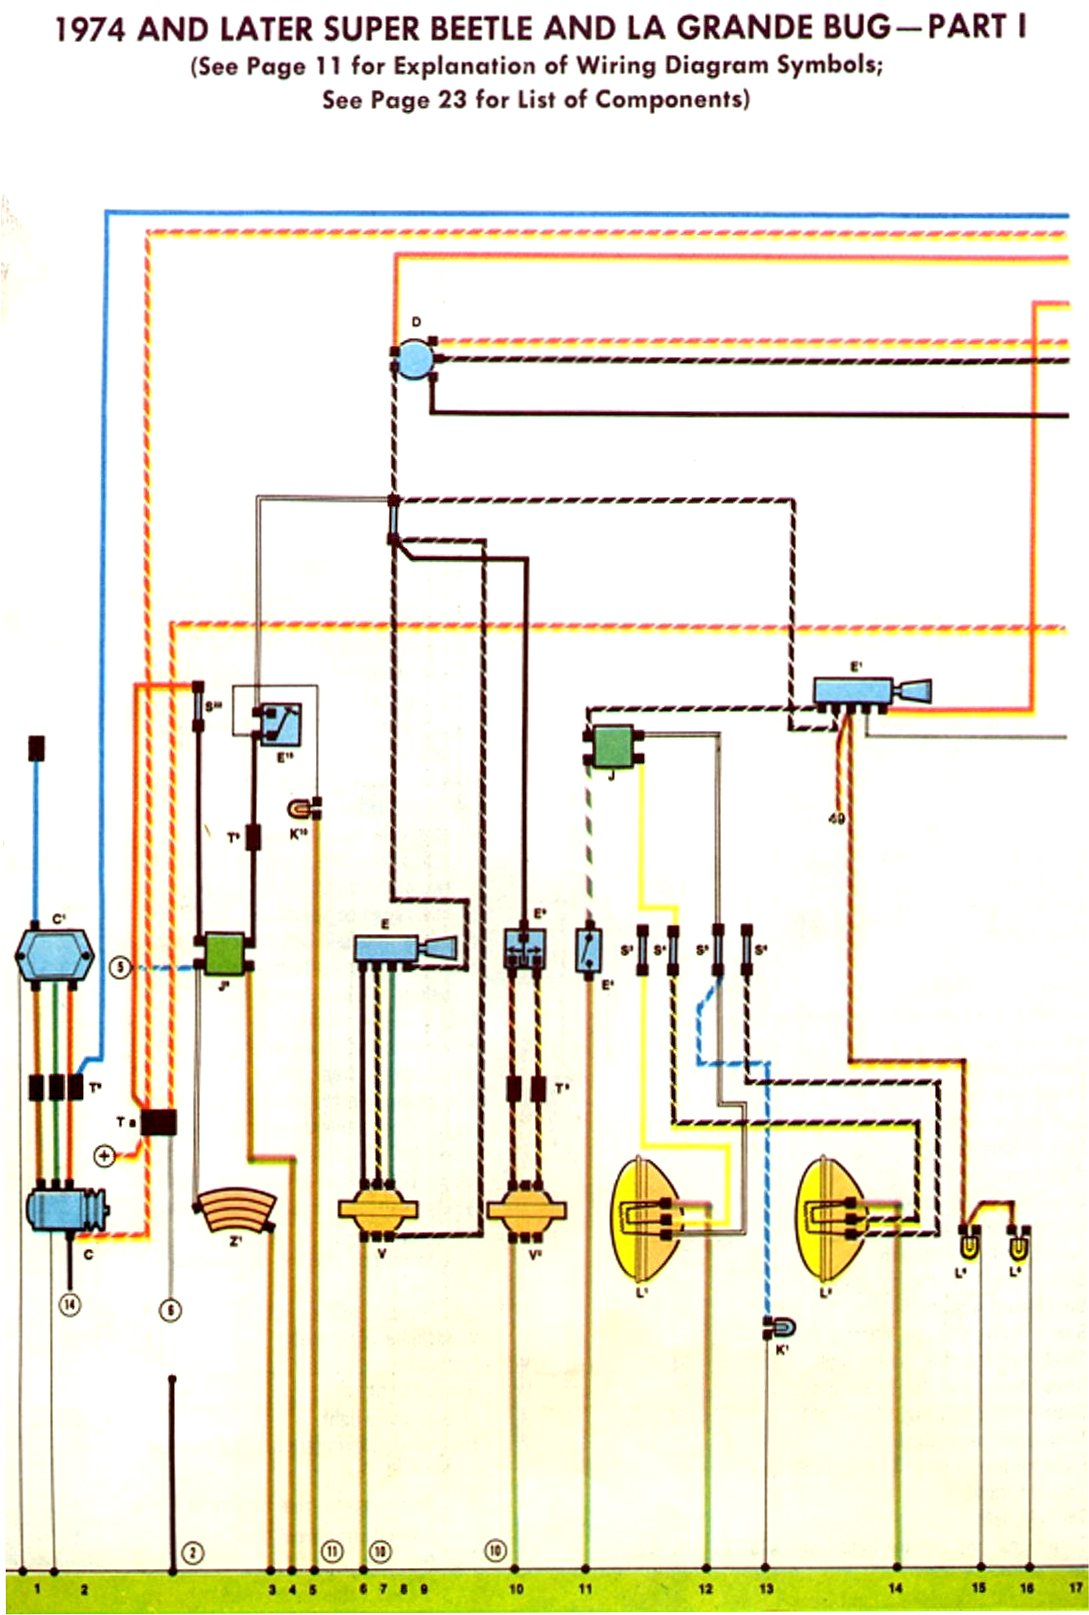 starter wiring diagram beetle 1973 thesamba.com :: beetle - late model/super - 1968-up - view ...